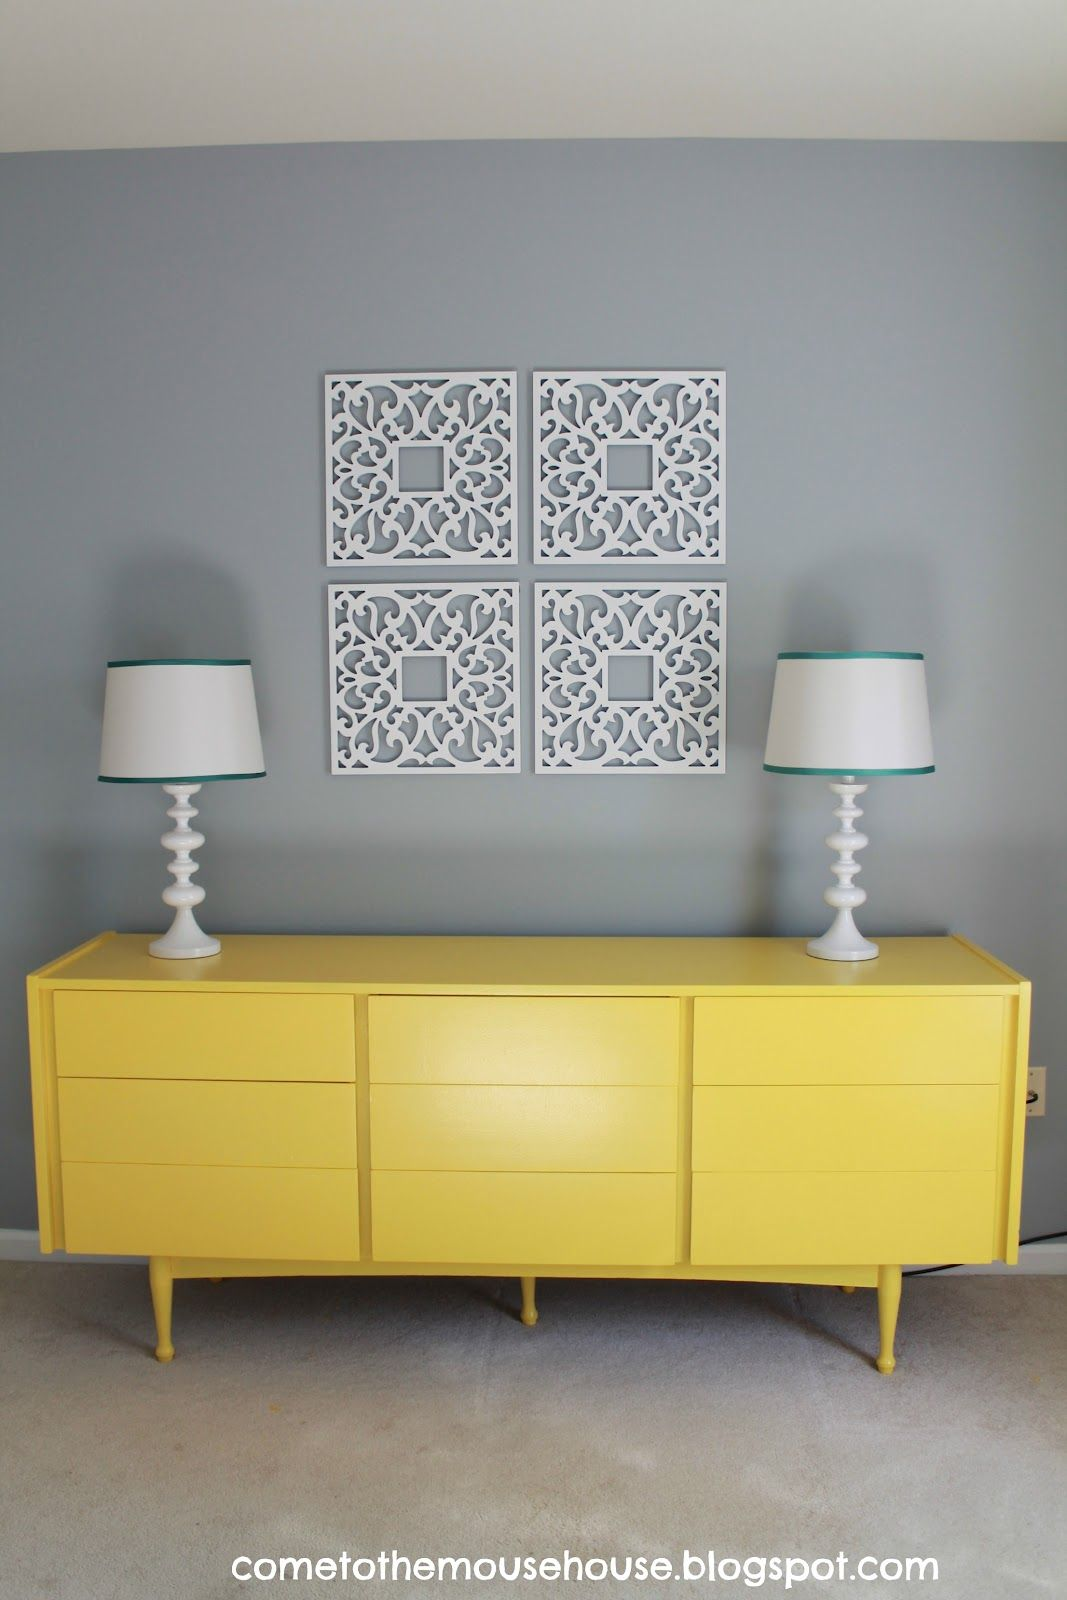 Gray and Yellow Playroom: The Reveal | Playrooms, Mid-century modern ...